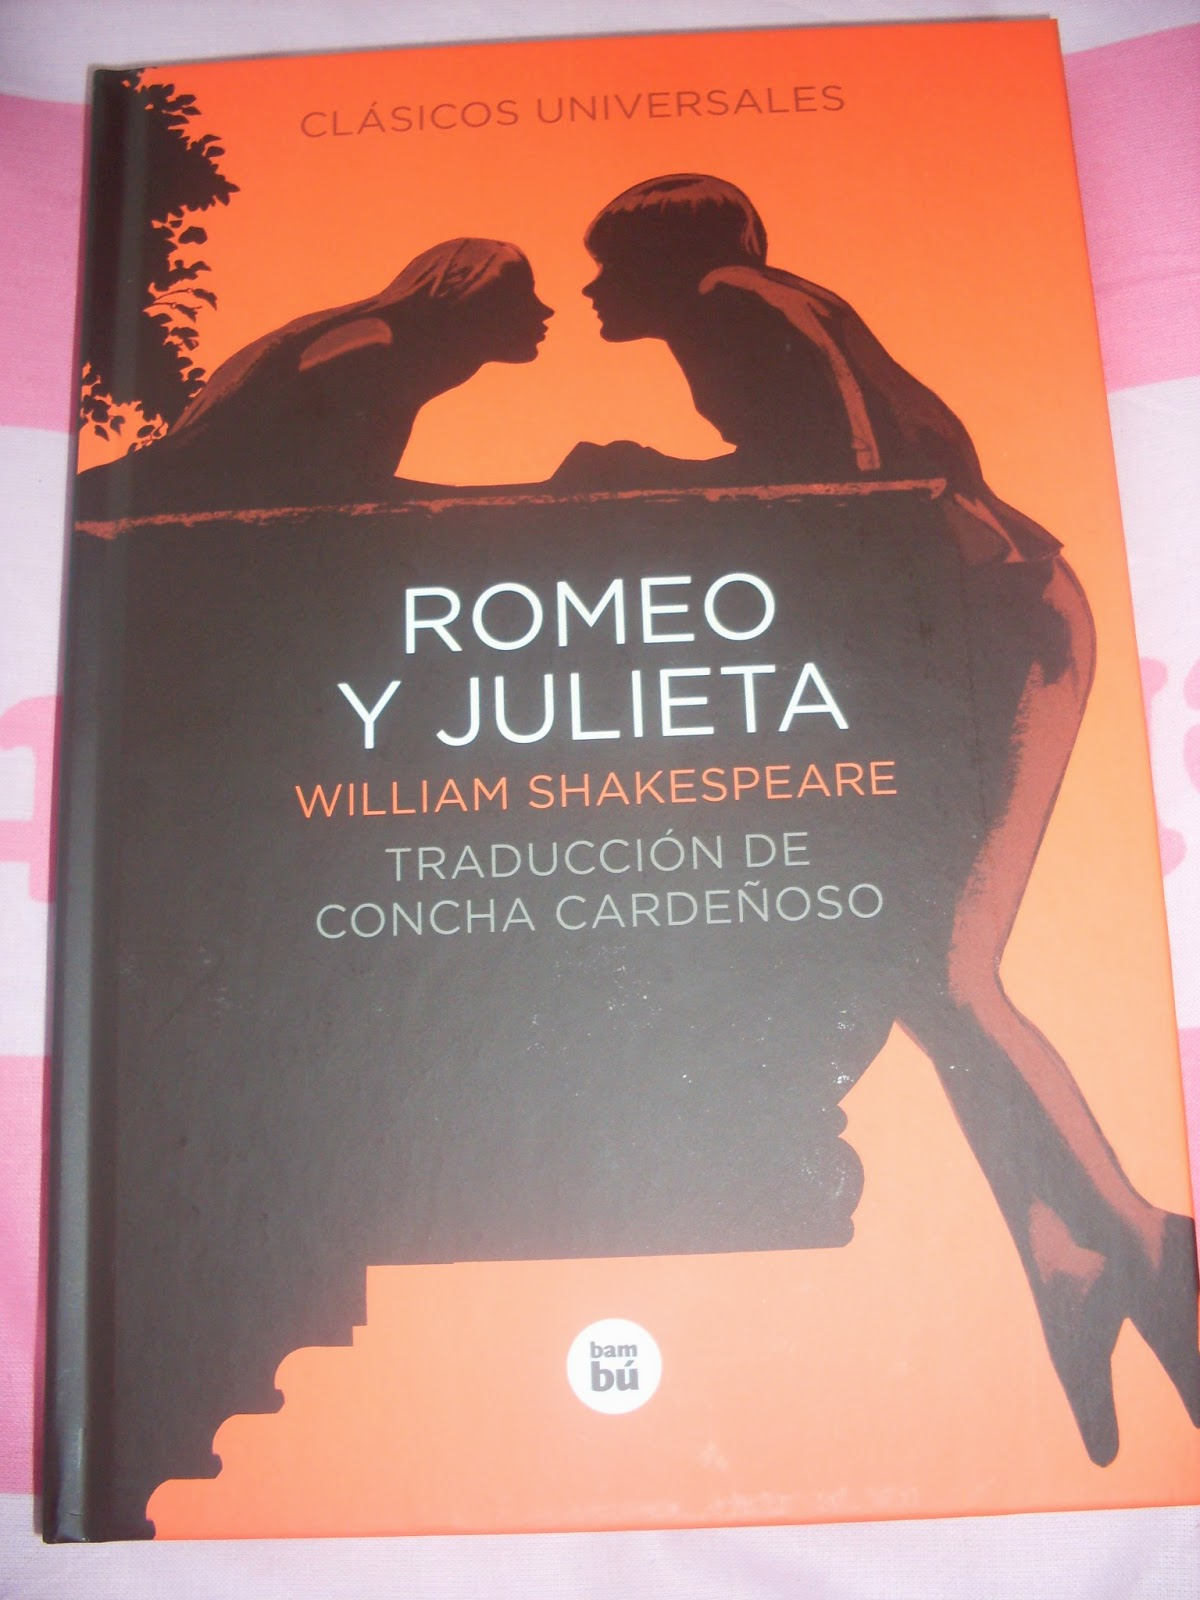 El Libro De Julieta Cada Libro Un Mundo Romeo Y Julieta De William